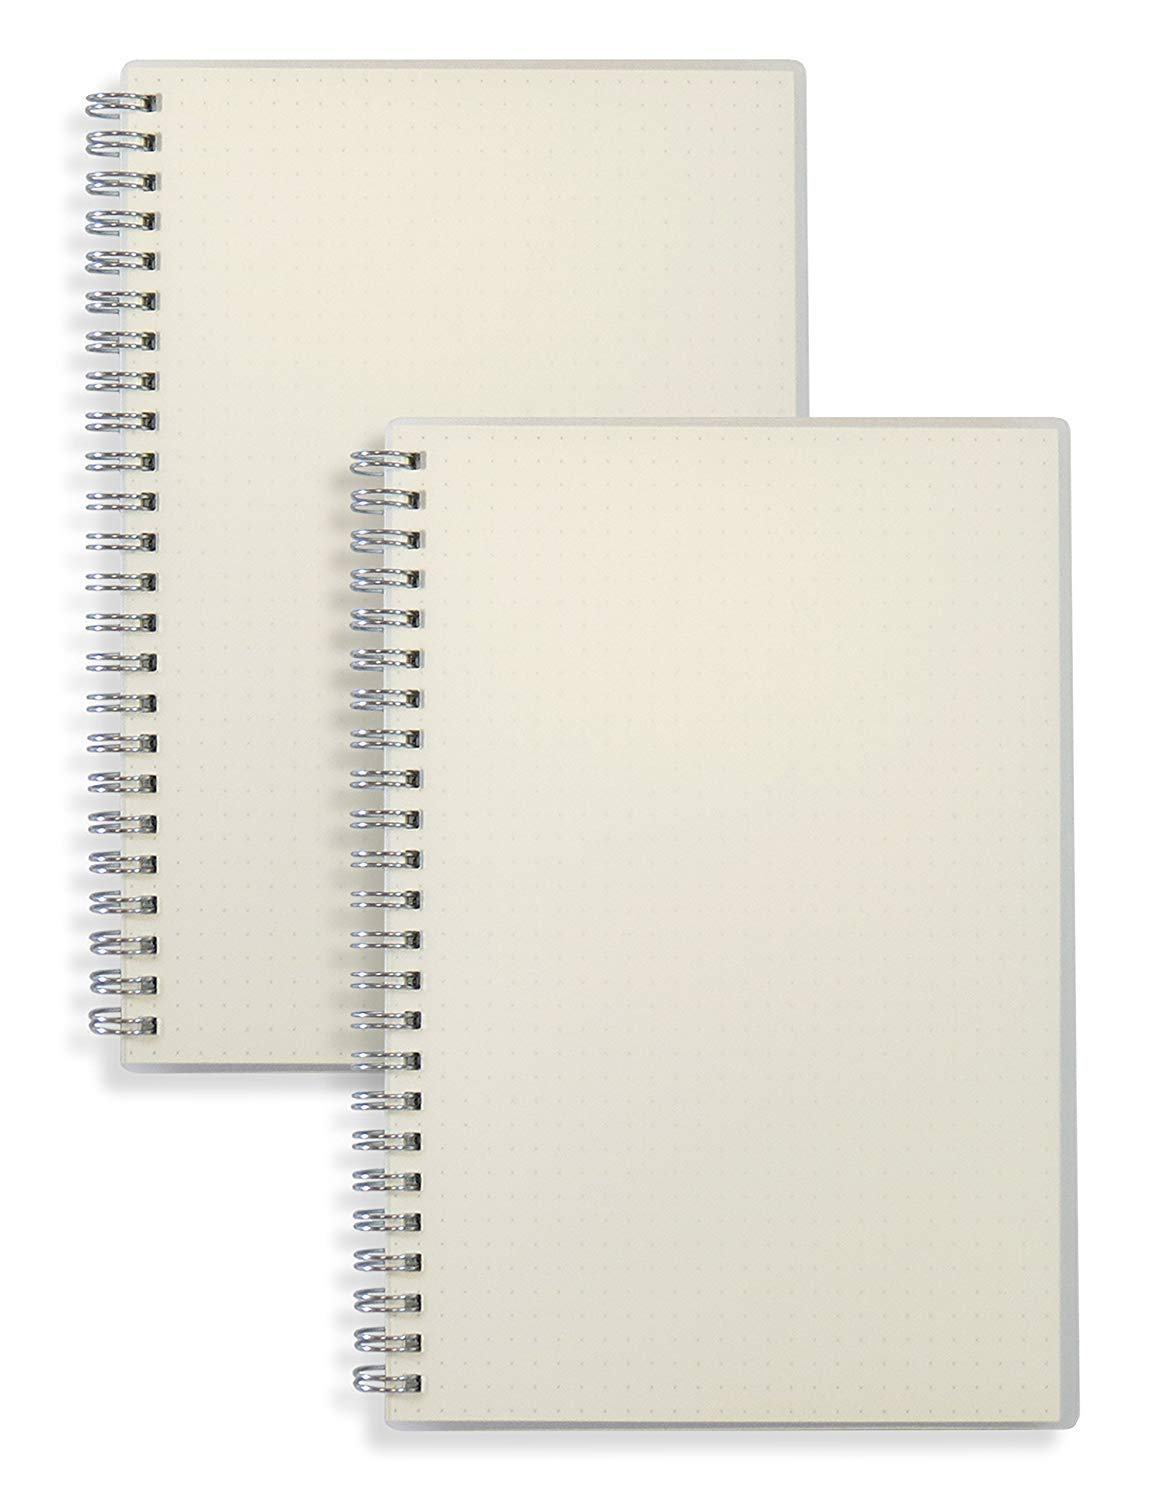 (2-Pack) A5 Dot Grid Bullet Journal 80gsm Spiral Notebook 5.7 x 8.3 inches - 80 Sheets per Book, Thick Dotted Paper, Wirebound Md trade